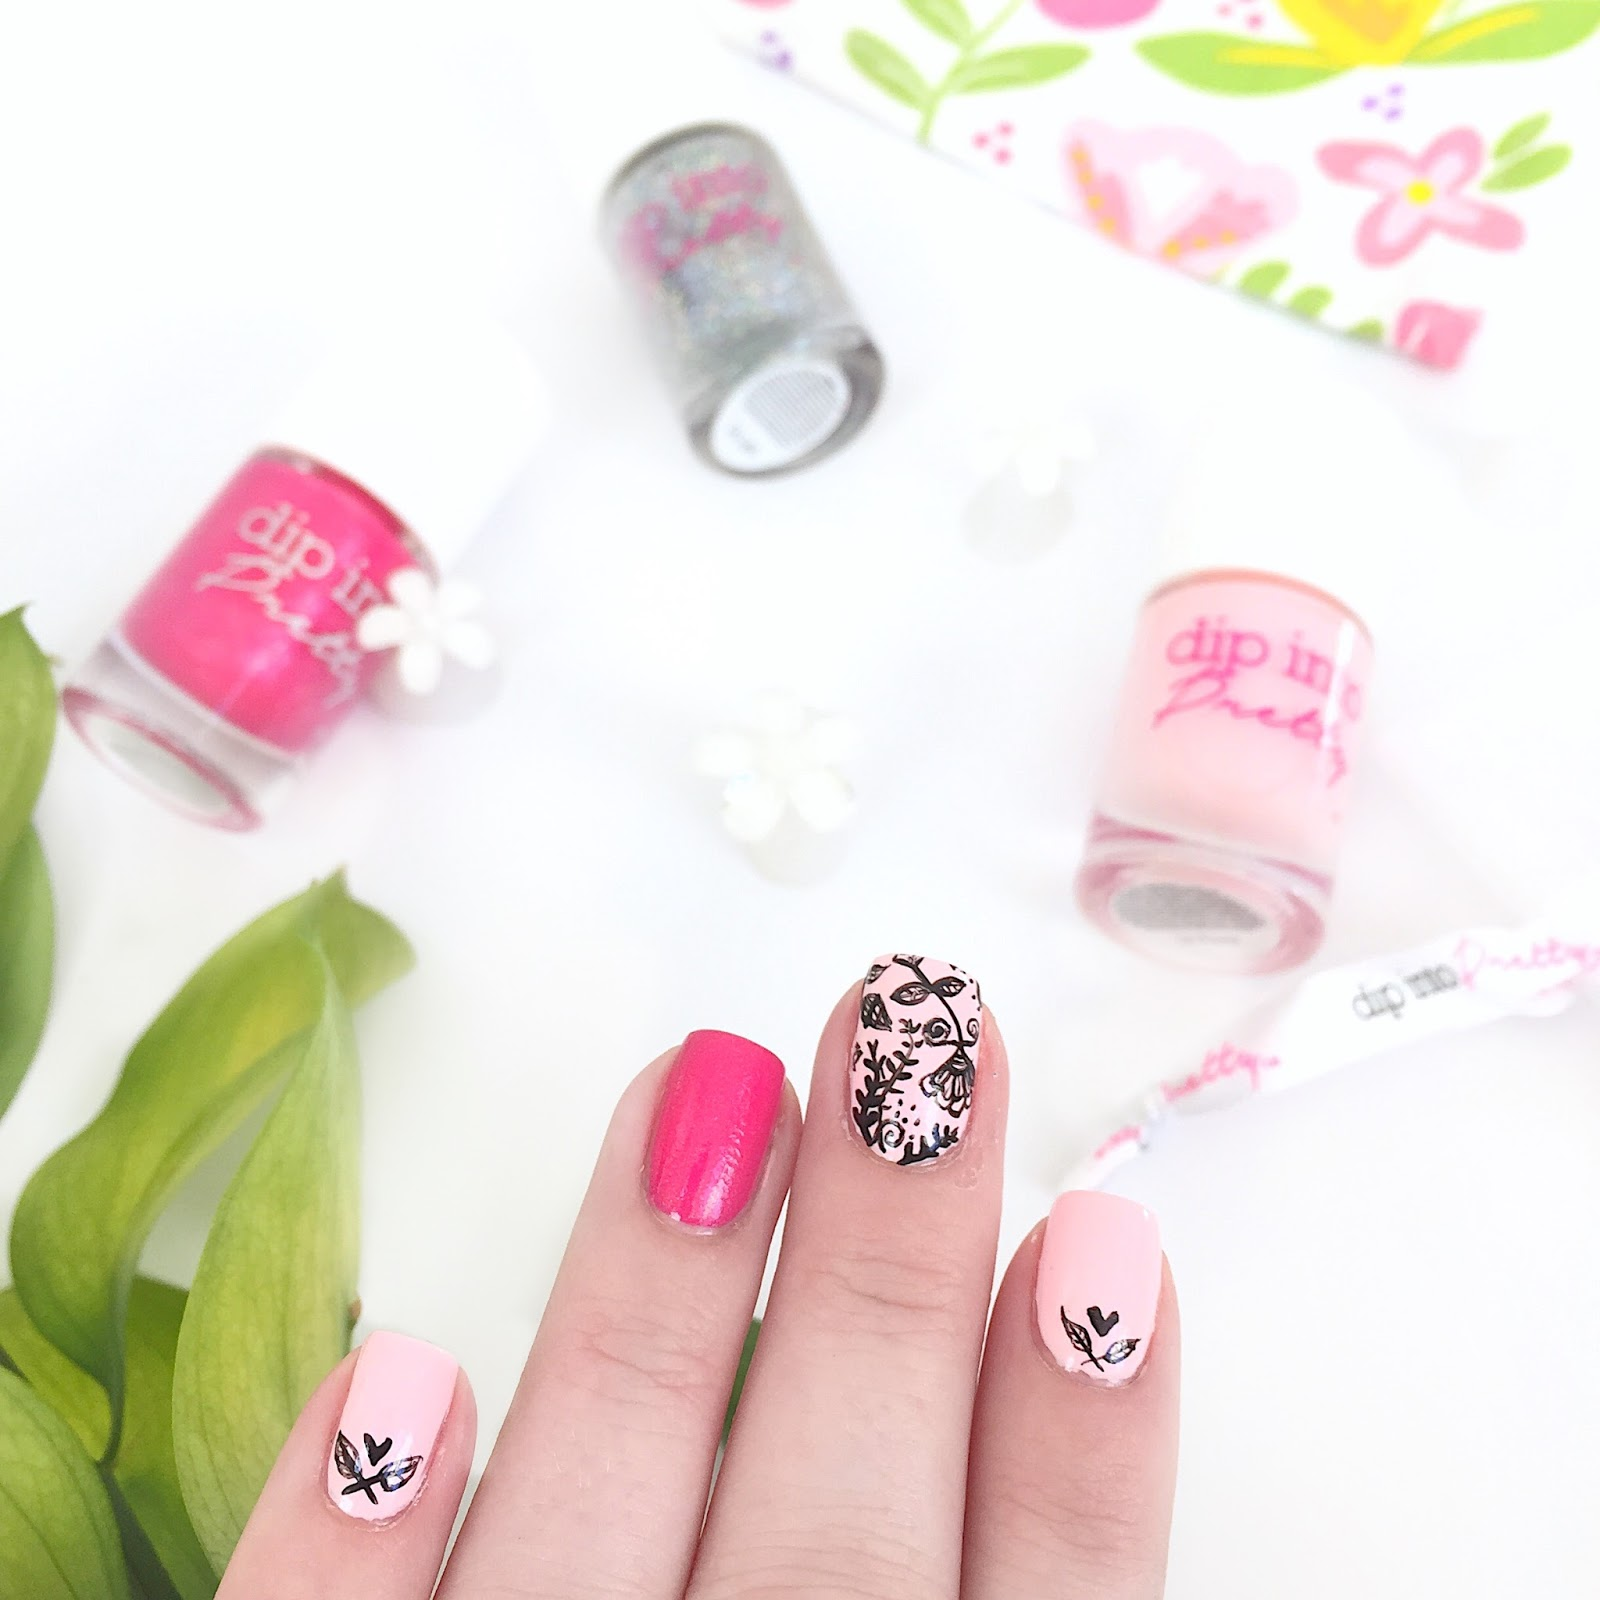 Dip Into Pretty Nail Art